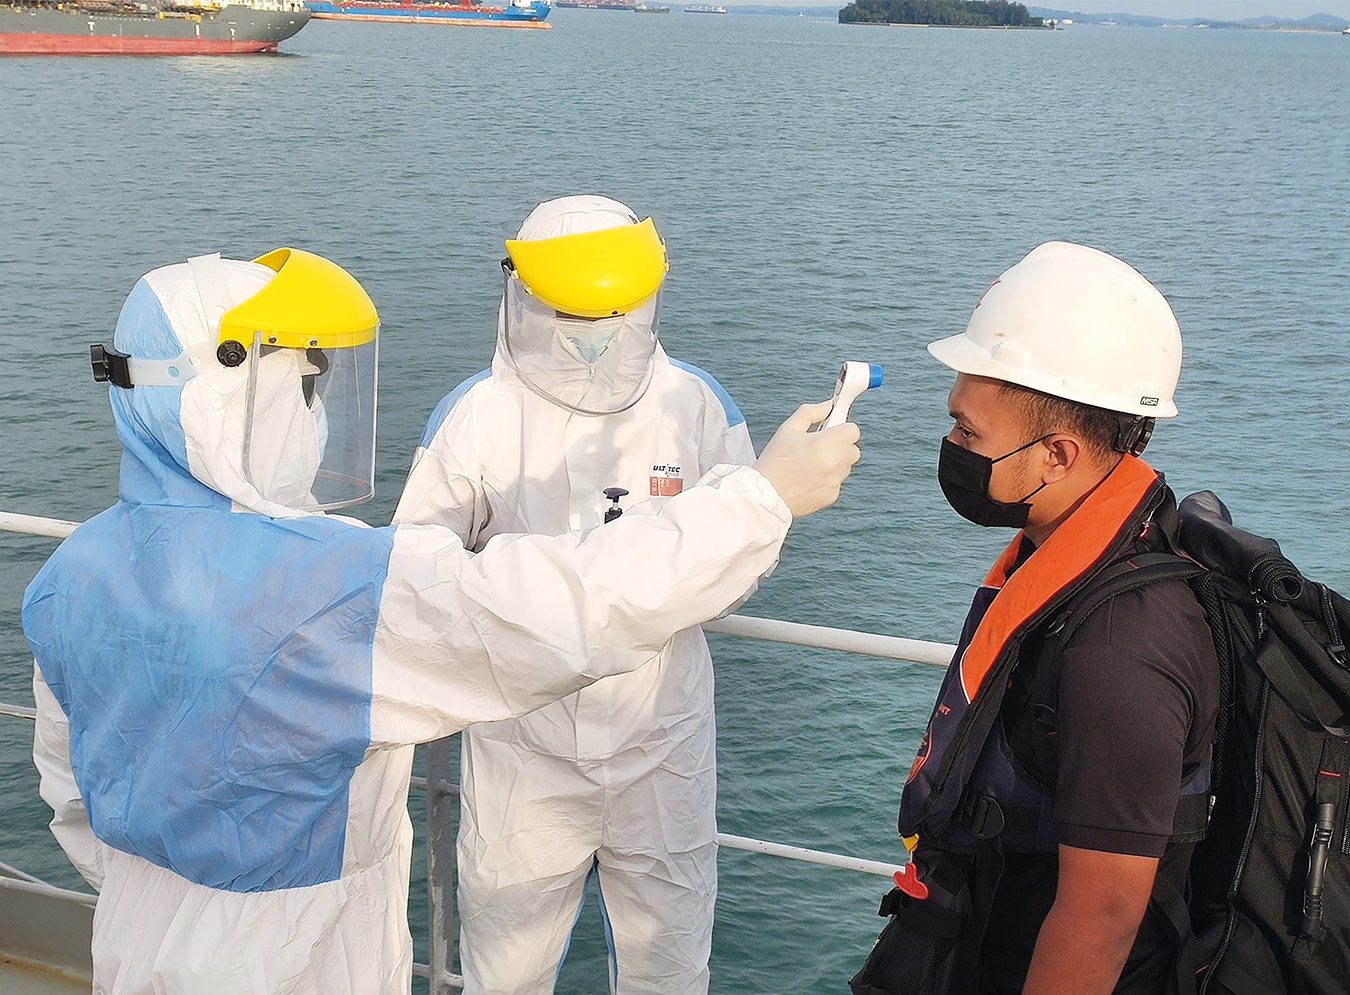 The New Normal for our Seafarers – How are they coping?